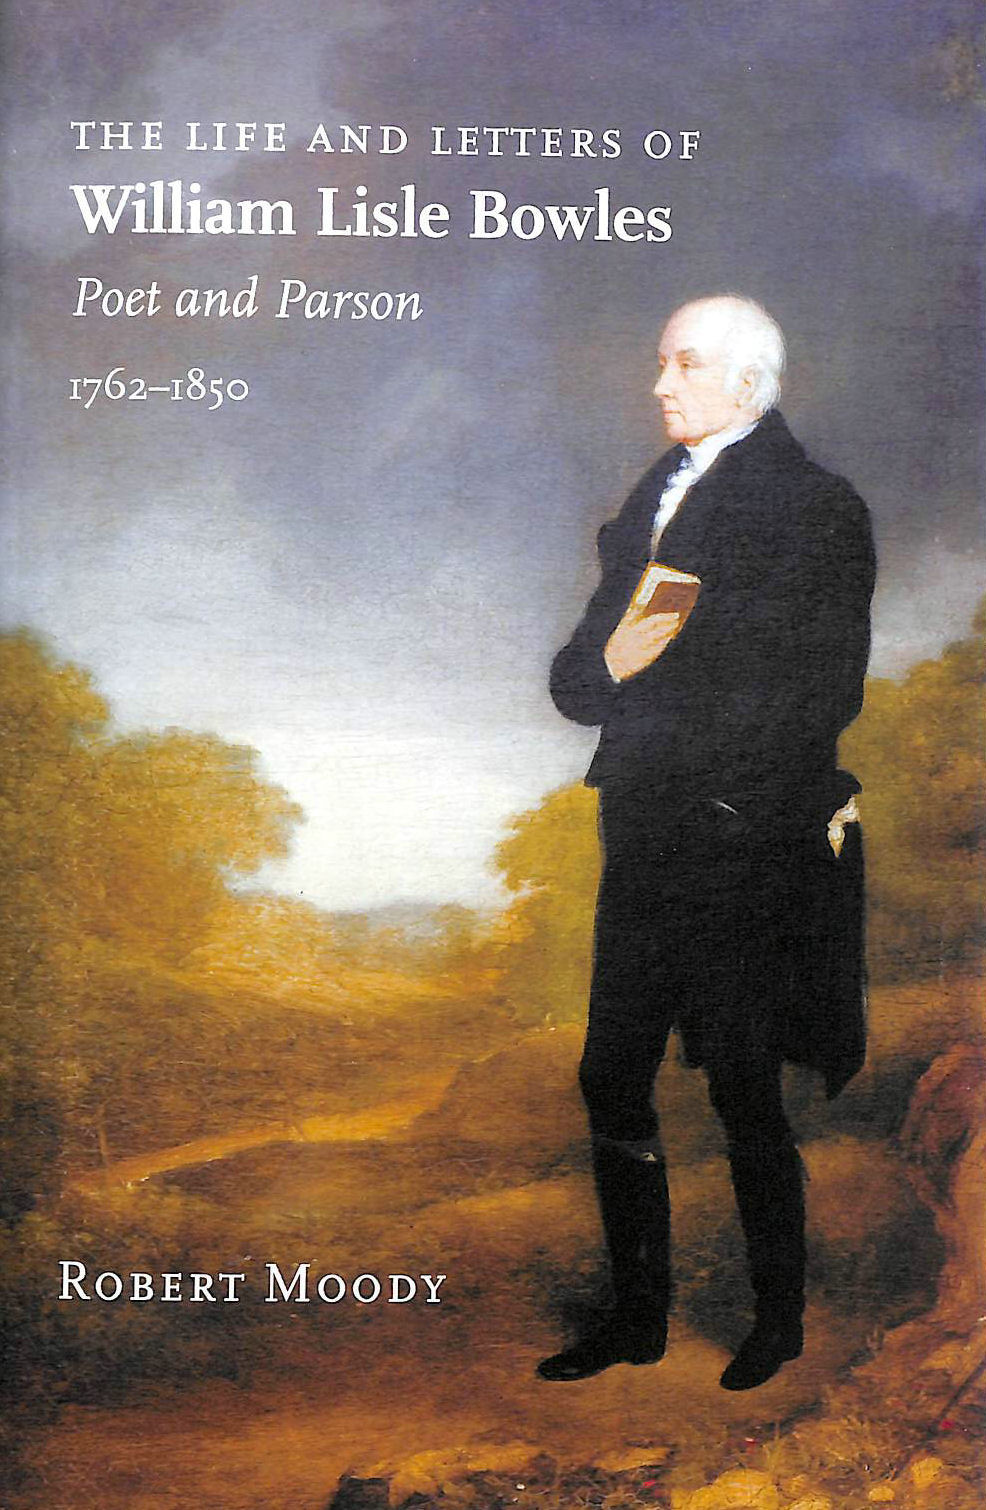 Image for The Life and Letters of William Lisle Bowles, Poet and Parson, 1762-1850